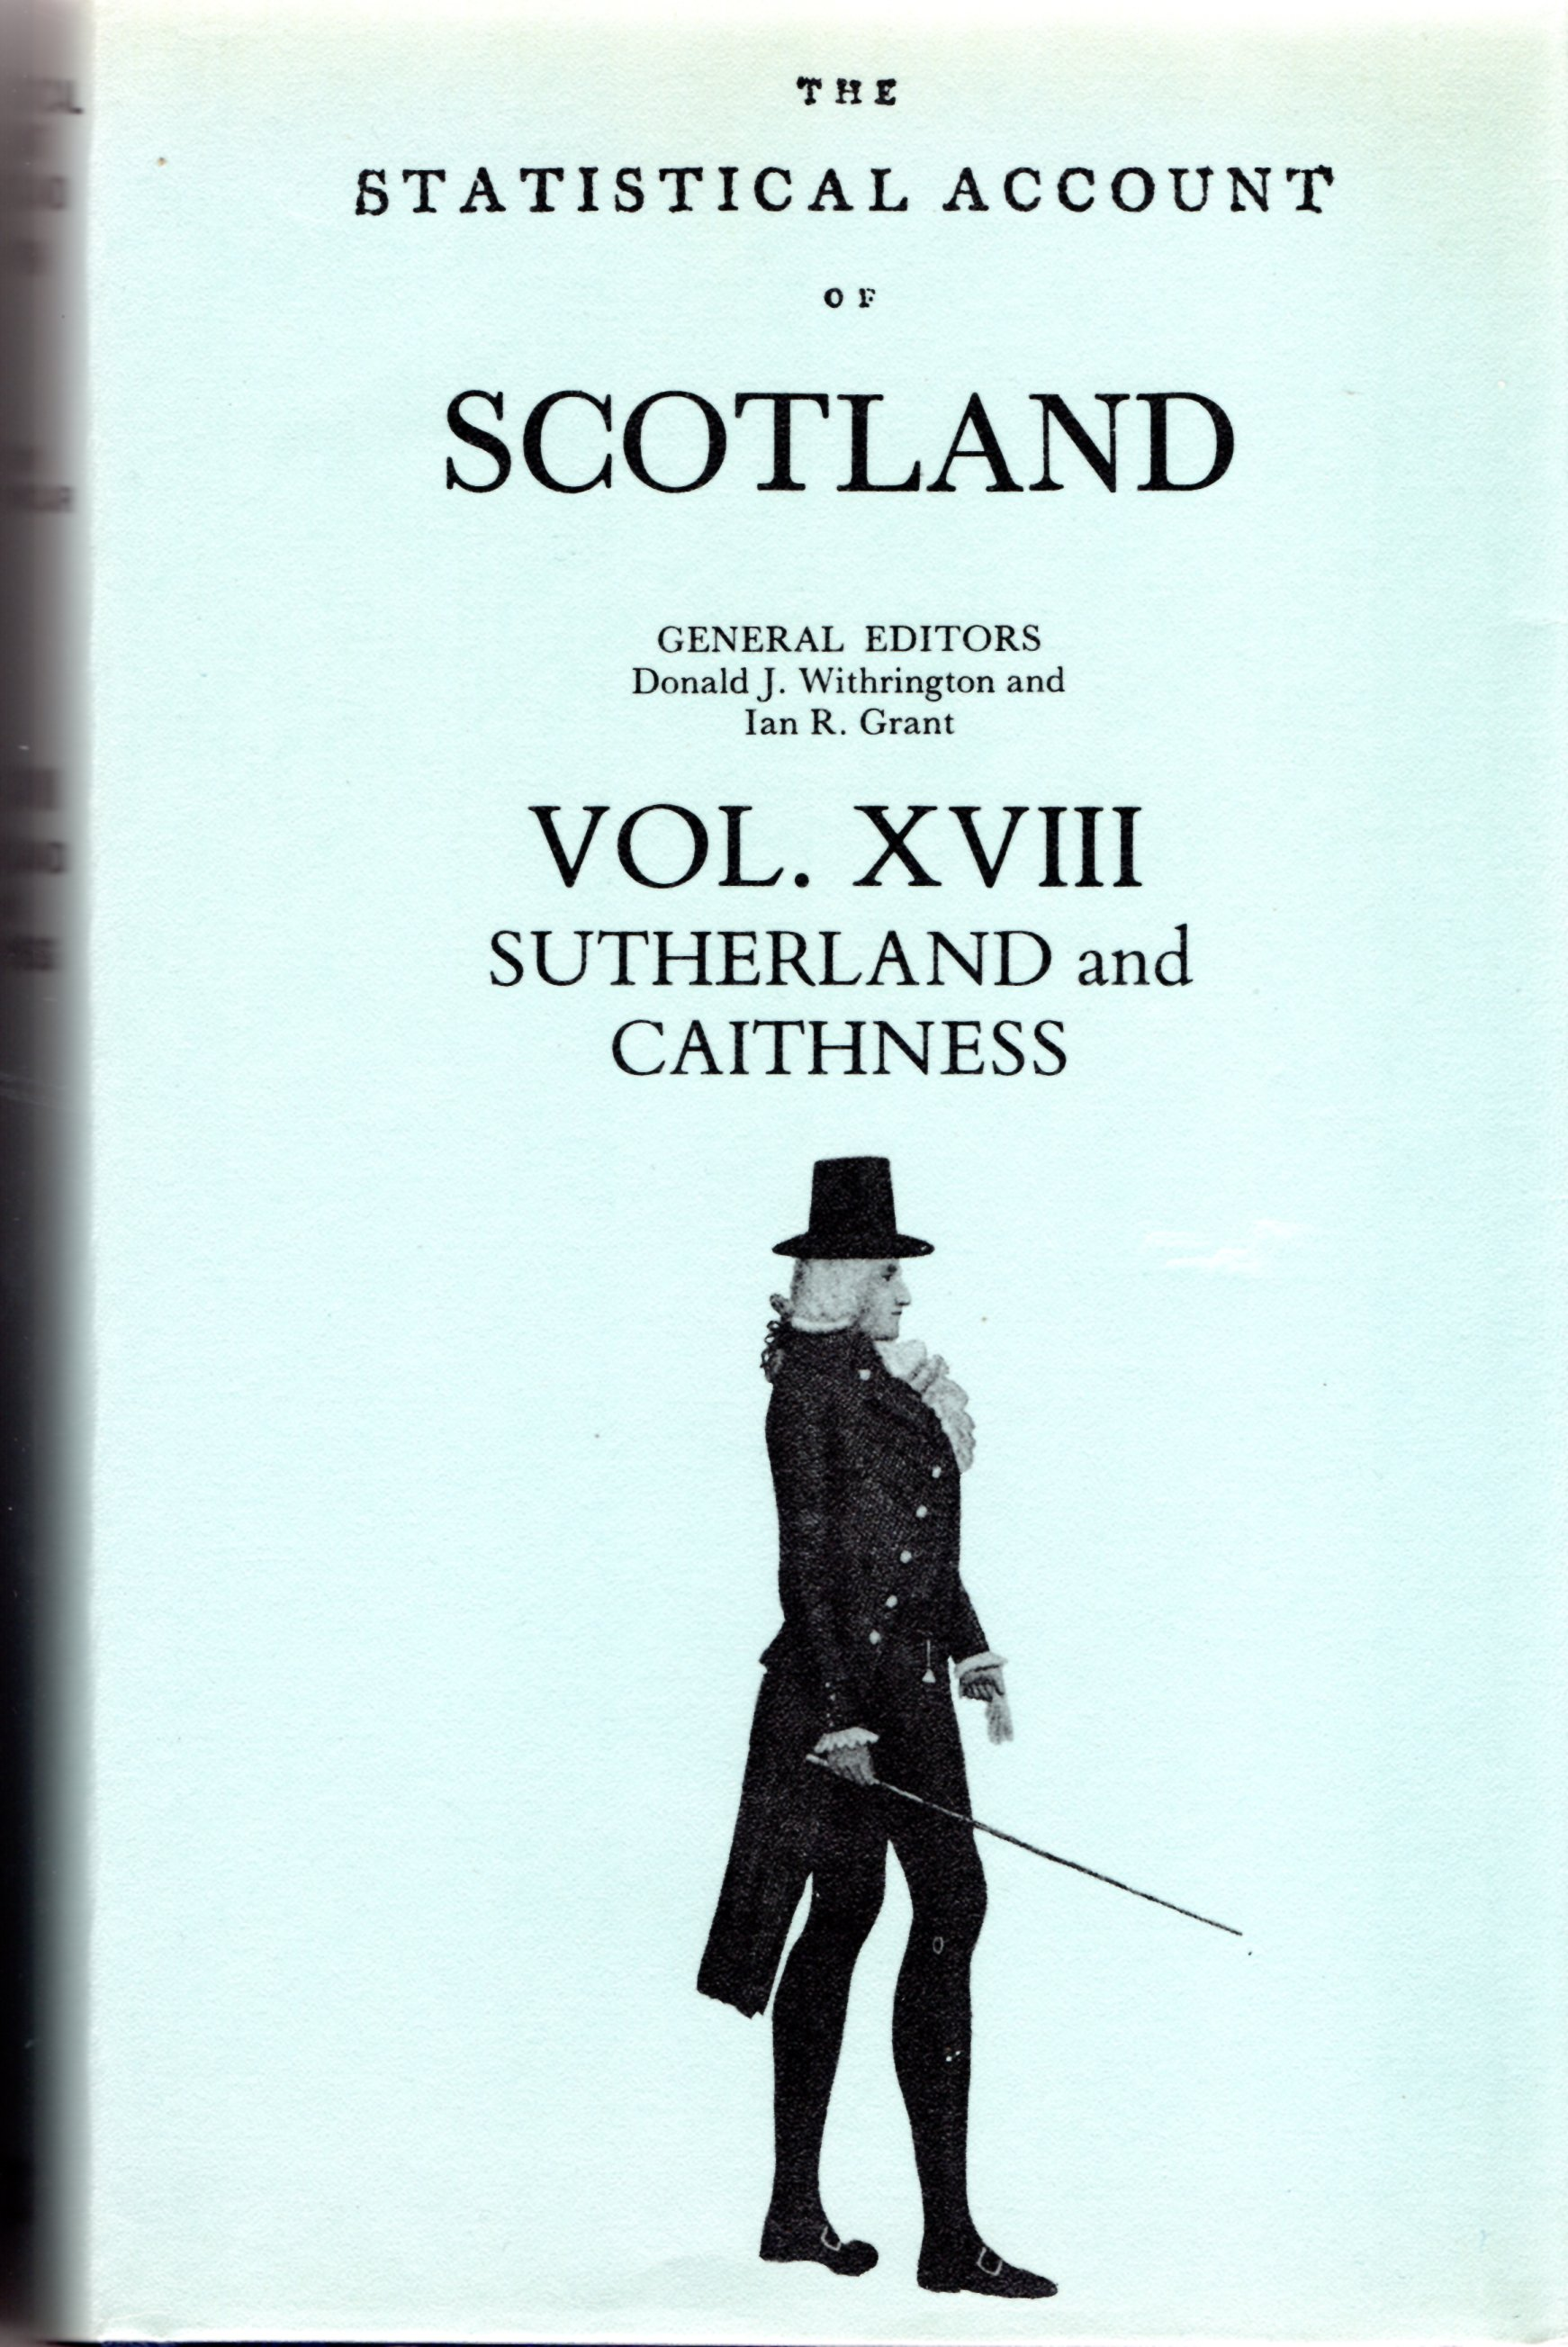 Image for Statistical Account of Scotland:Volume XVIII - Sutherland and Caithness Volume.